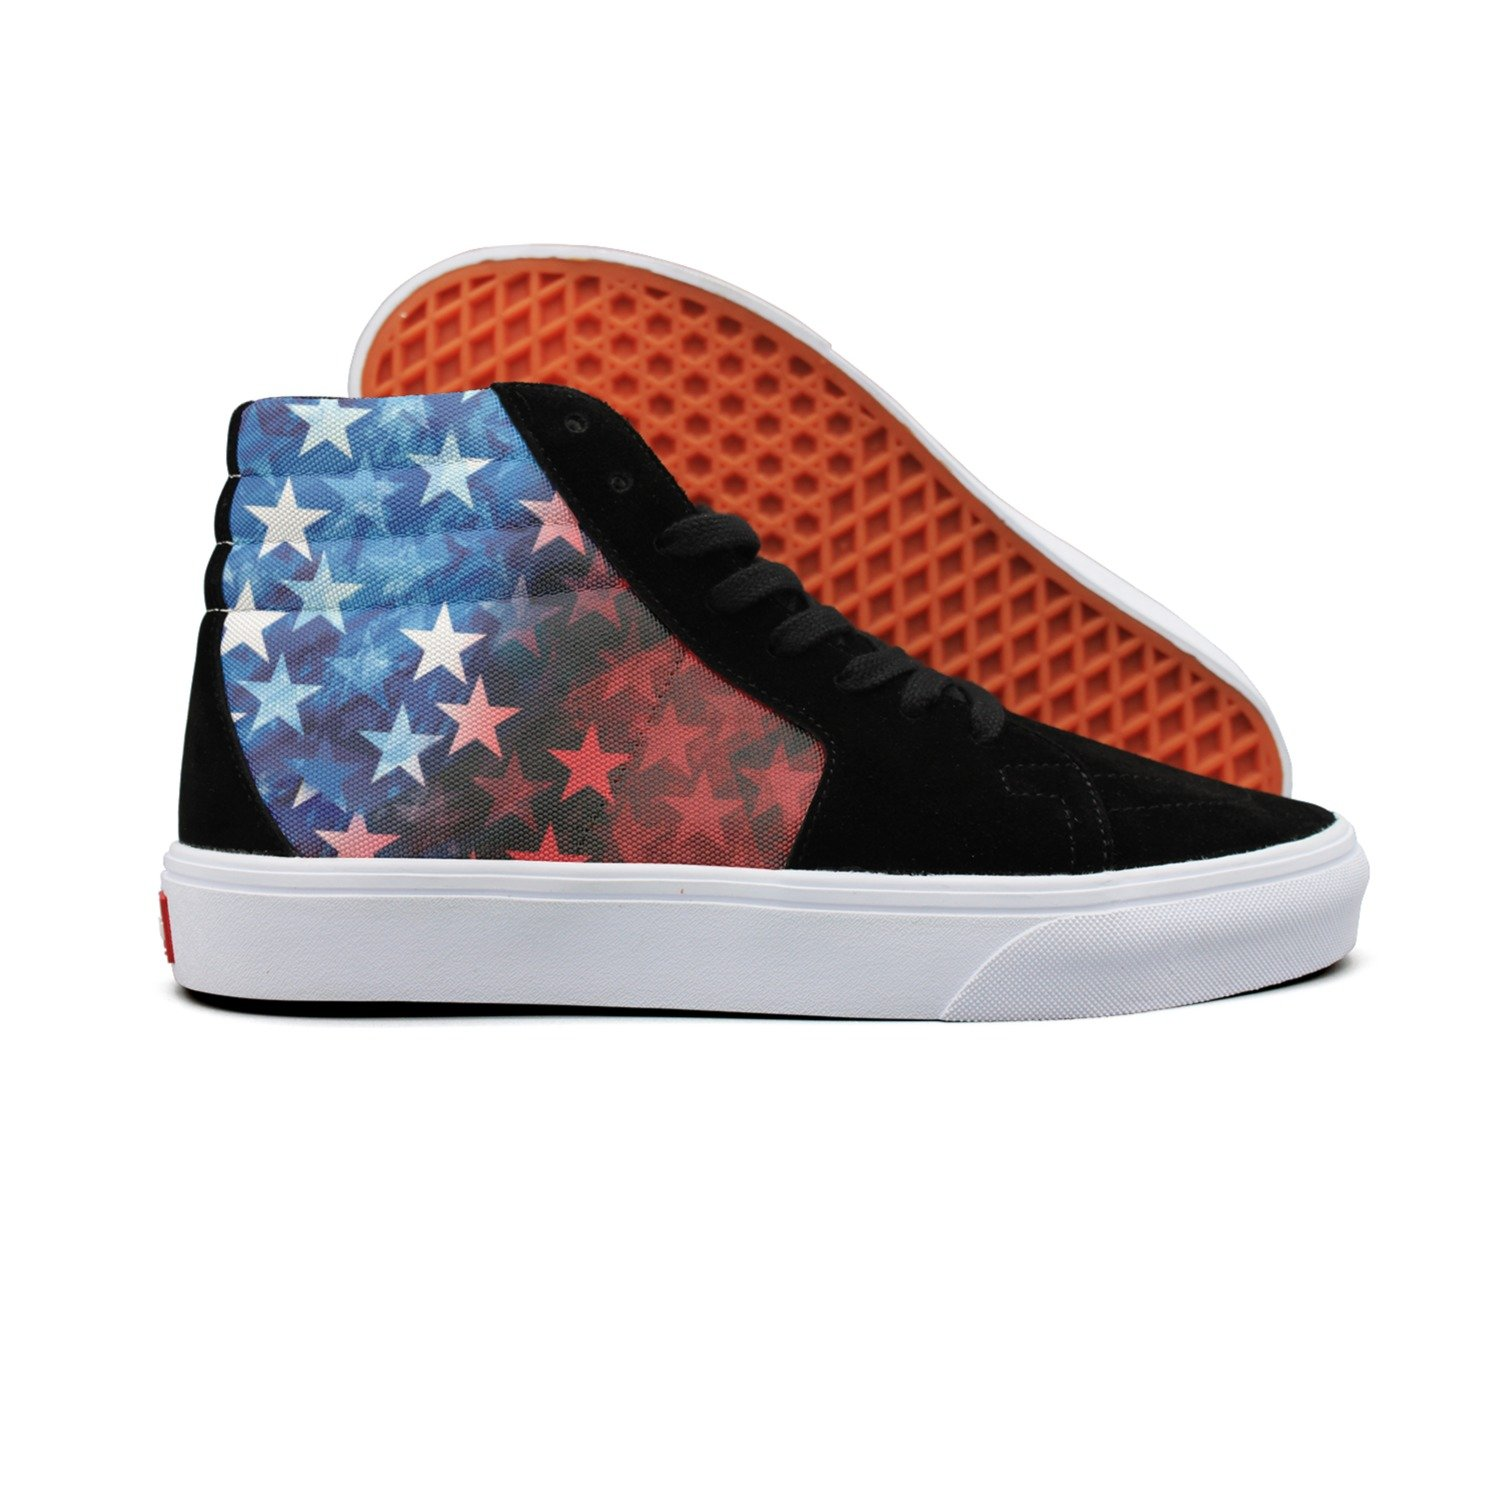 777d95deeb346 Amazon.com: gxxiishow USA Flag Vintage Style Canvas Men Shoes ...